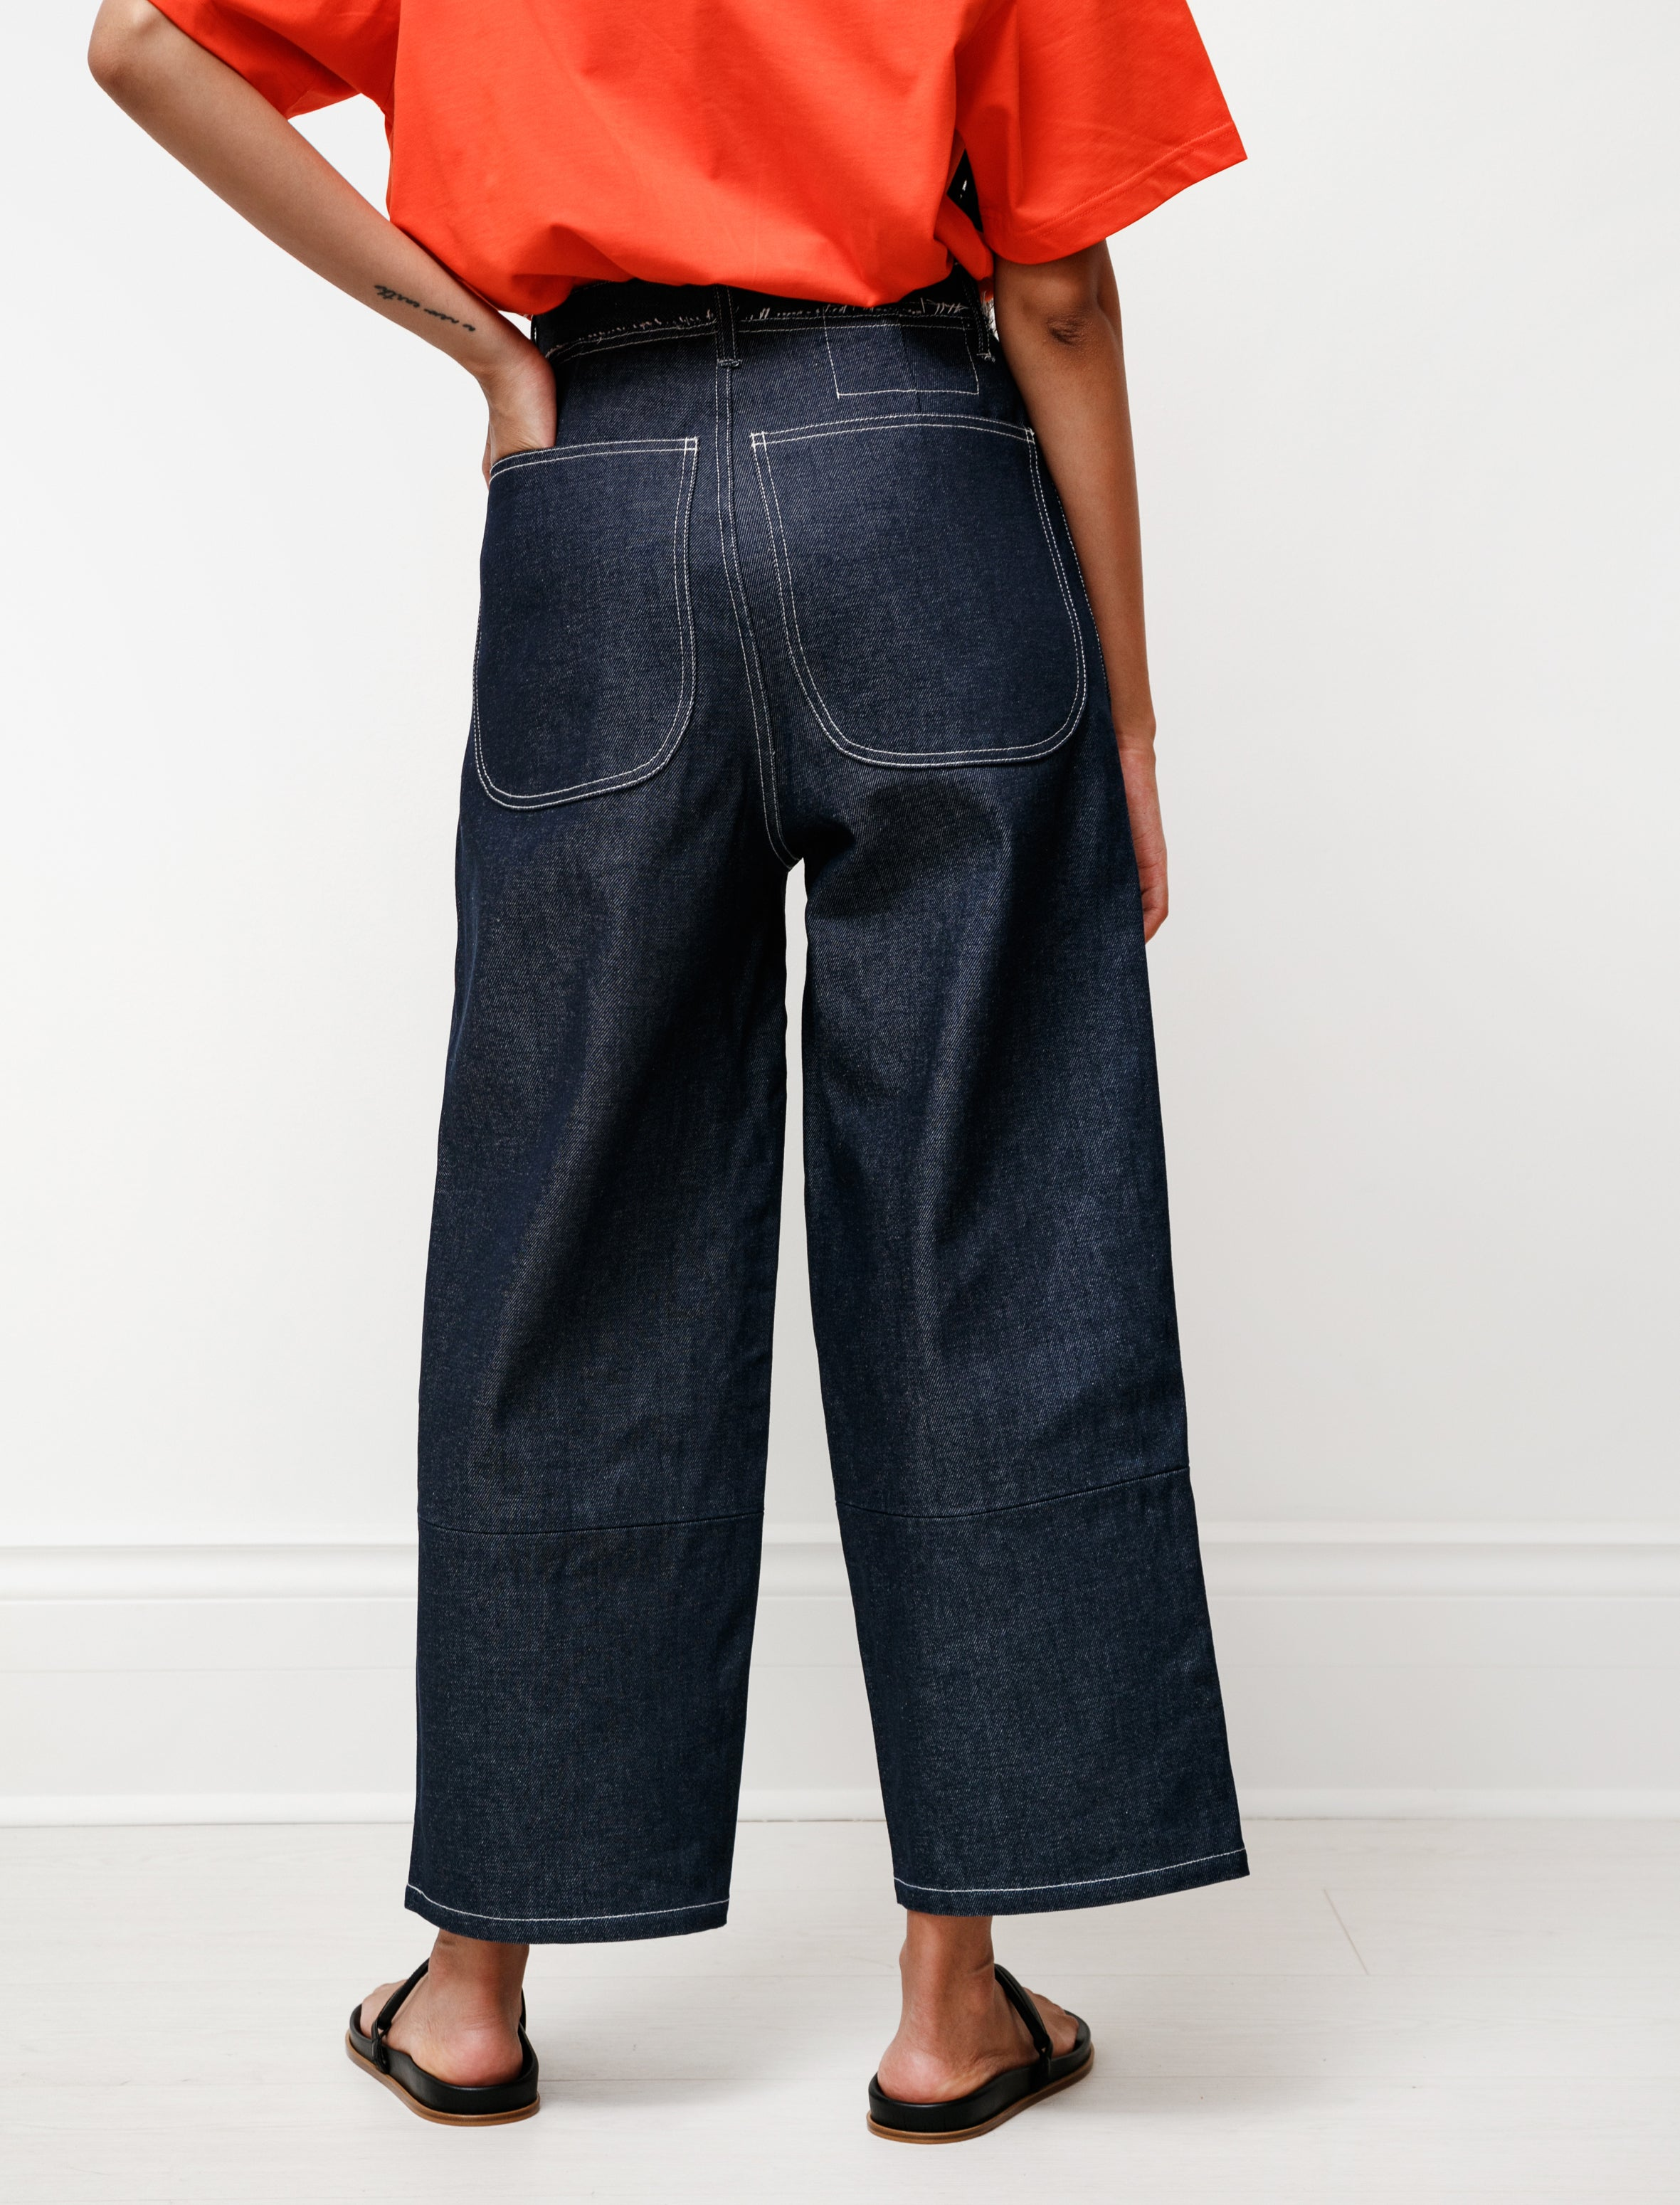 Aubergine Denim Pants Dark Blue